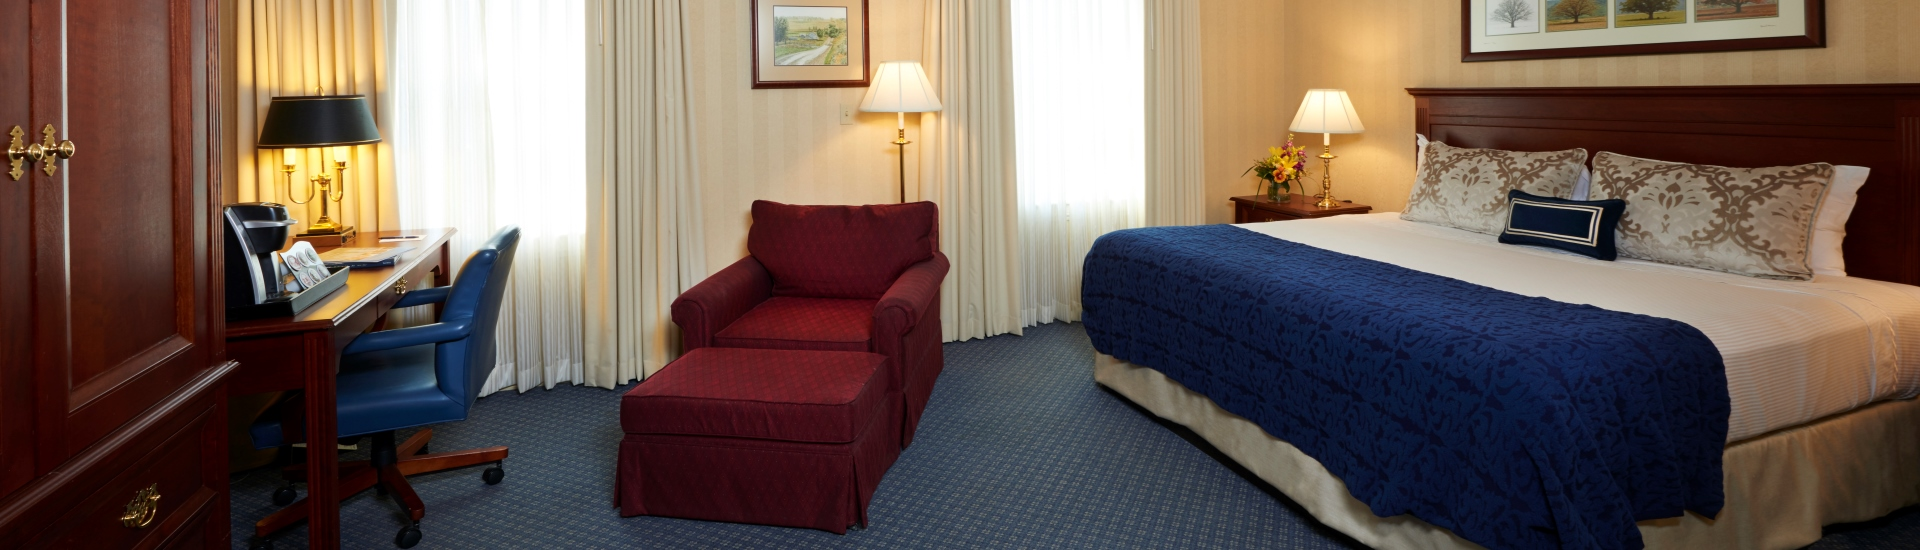 Guest Rooms Amp Lodging On Penn State Campus Luxury State